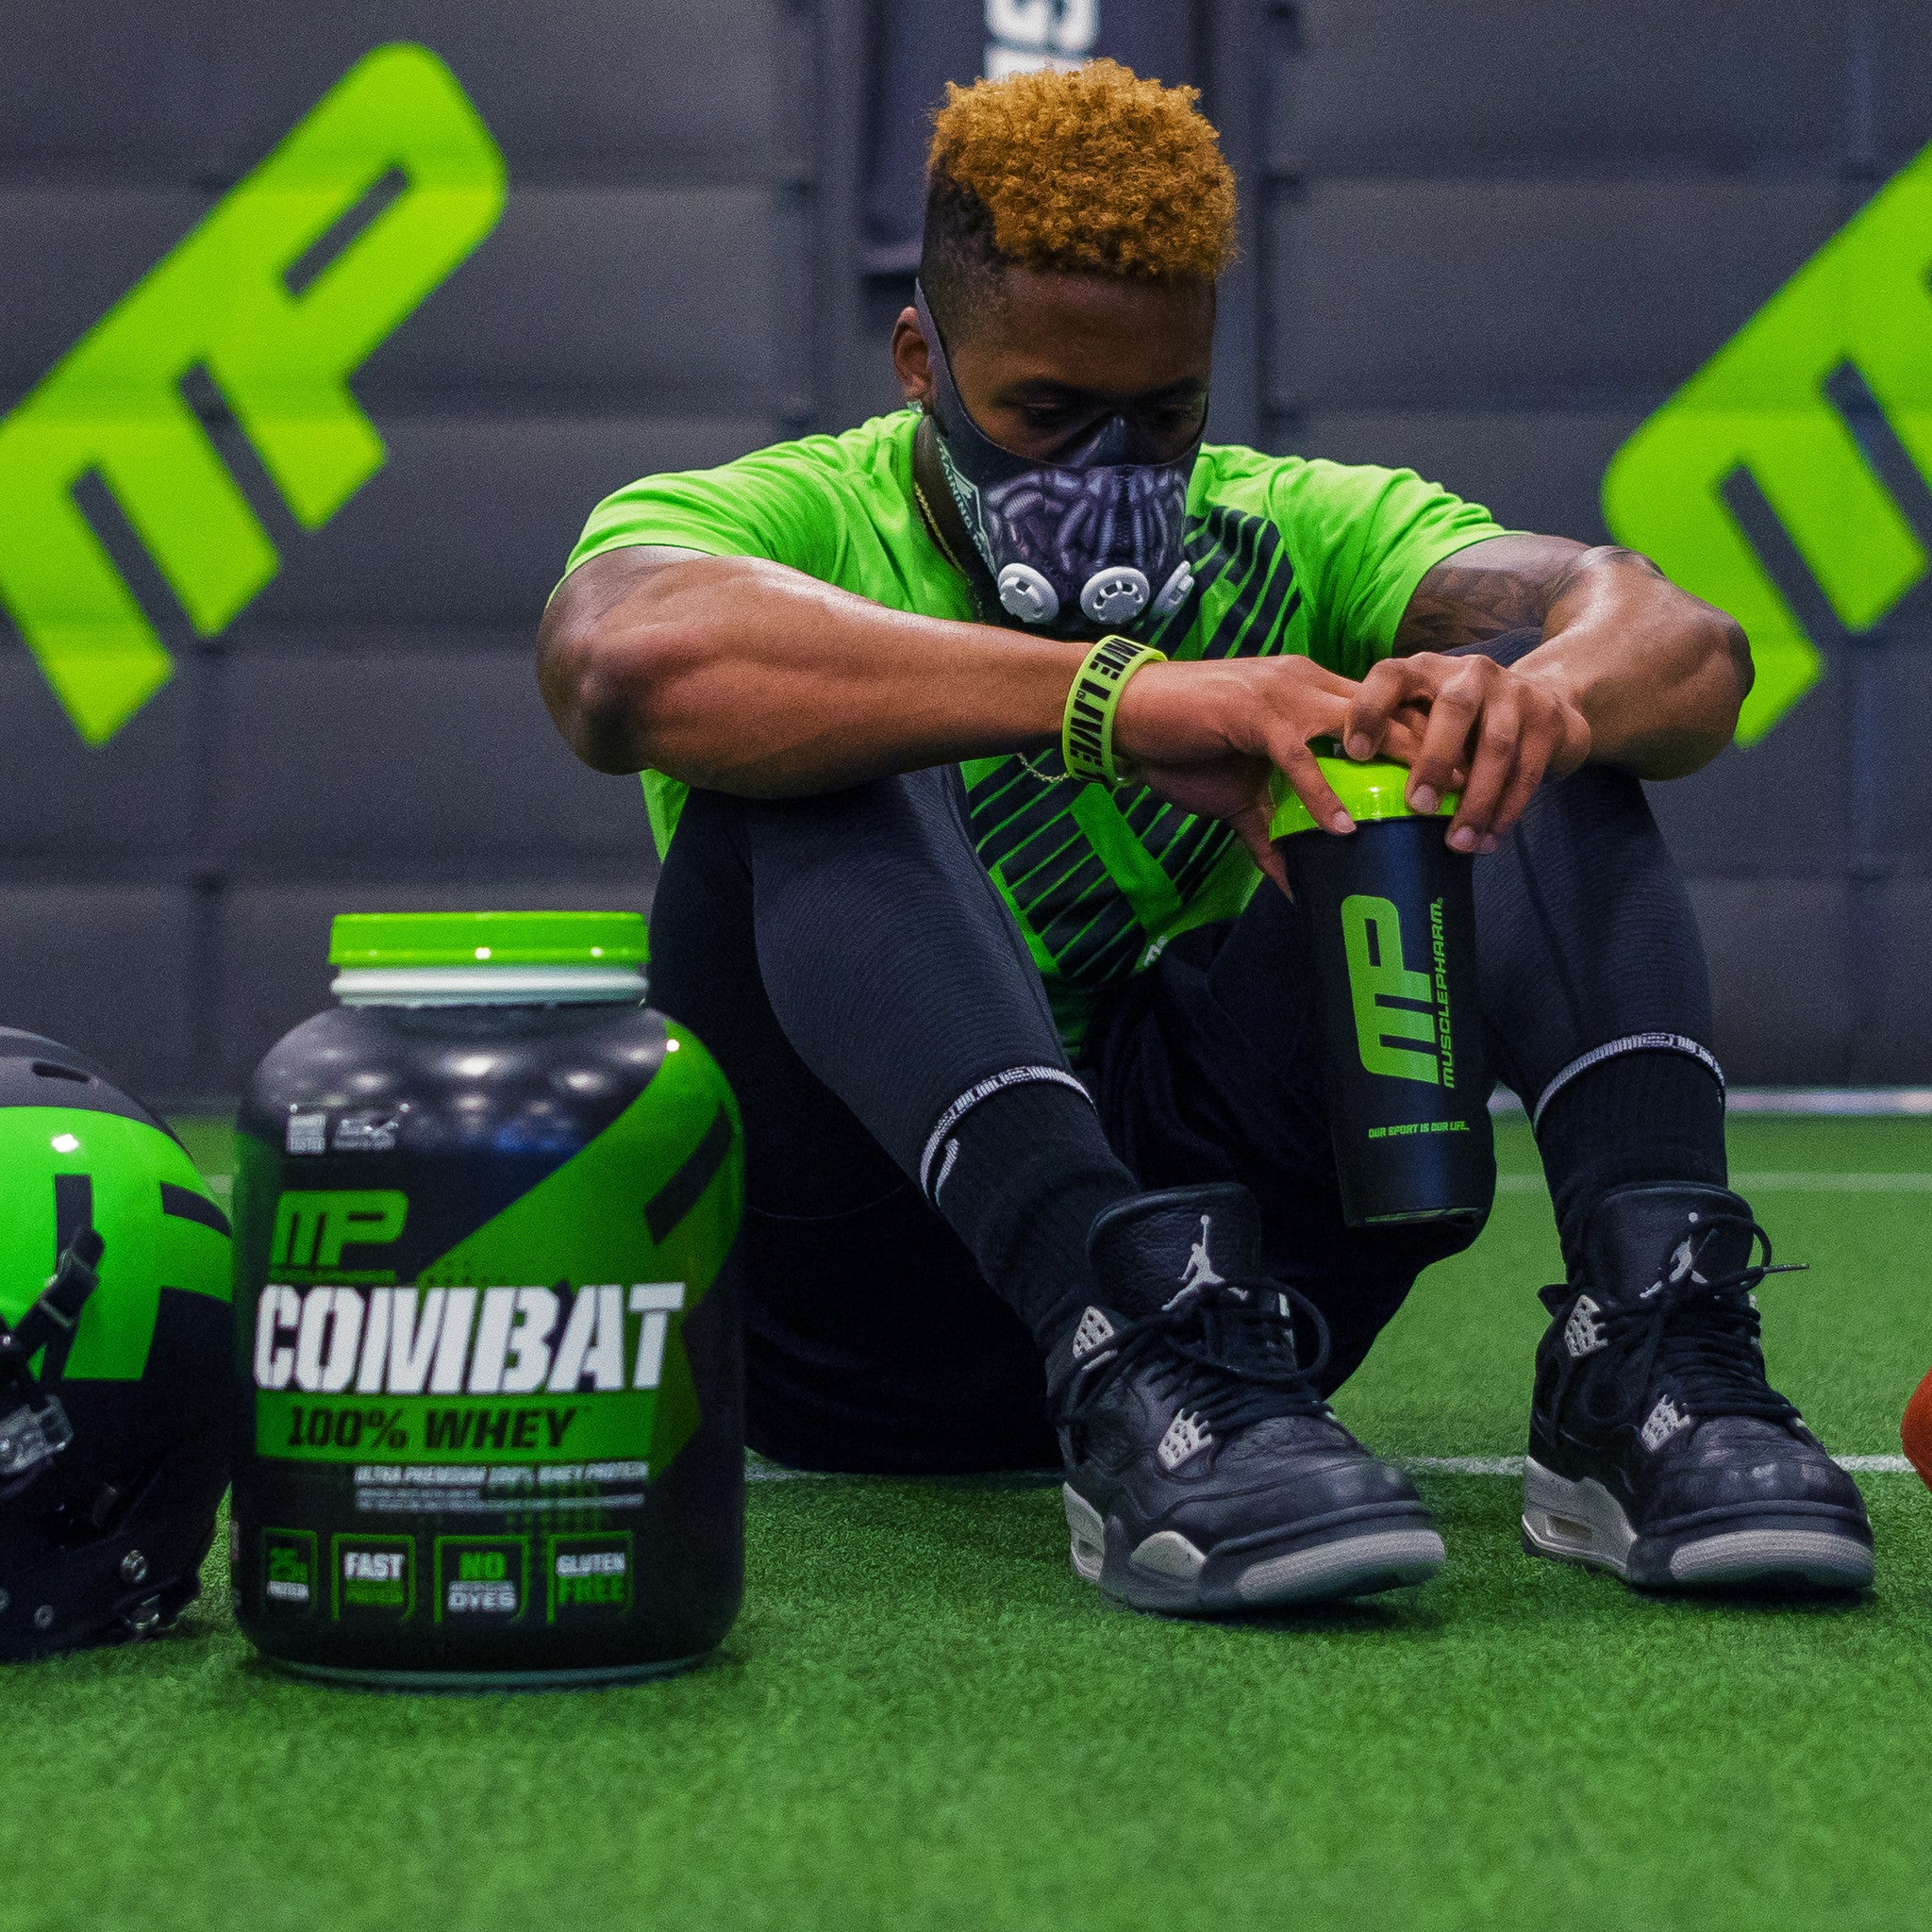 PRODUCT INTRO: Combat 100% Whey